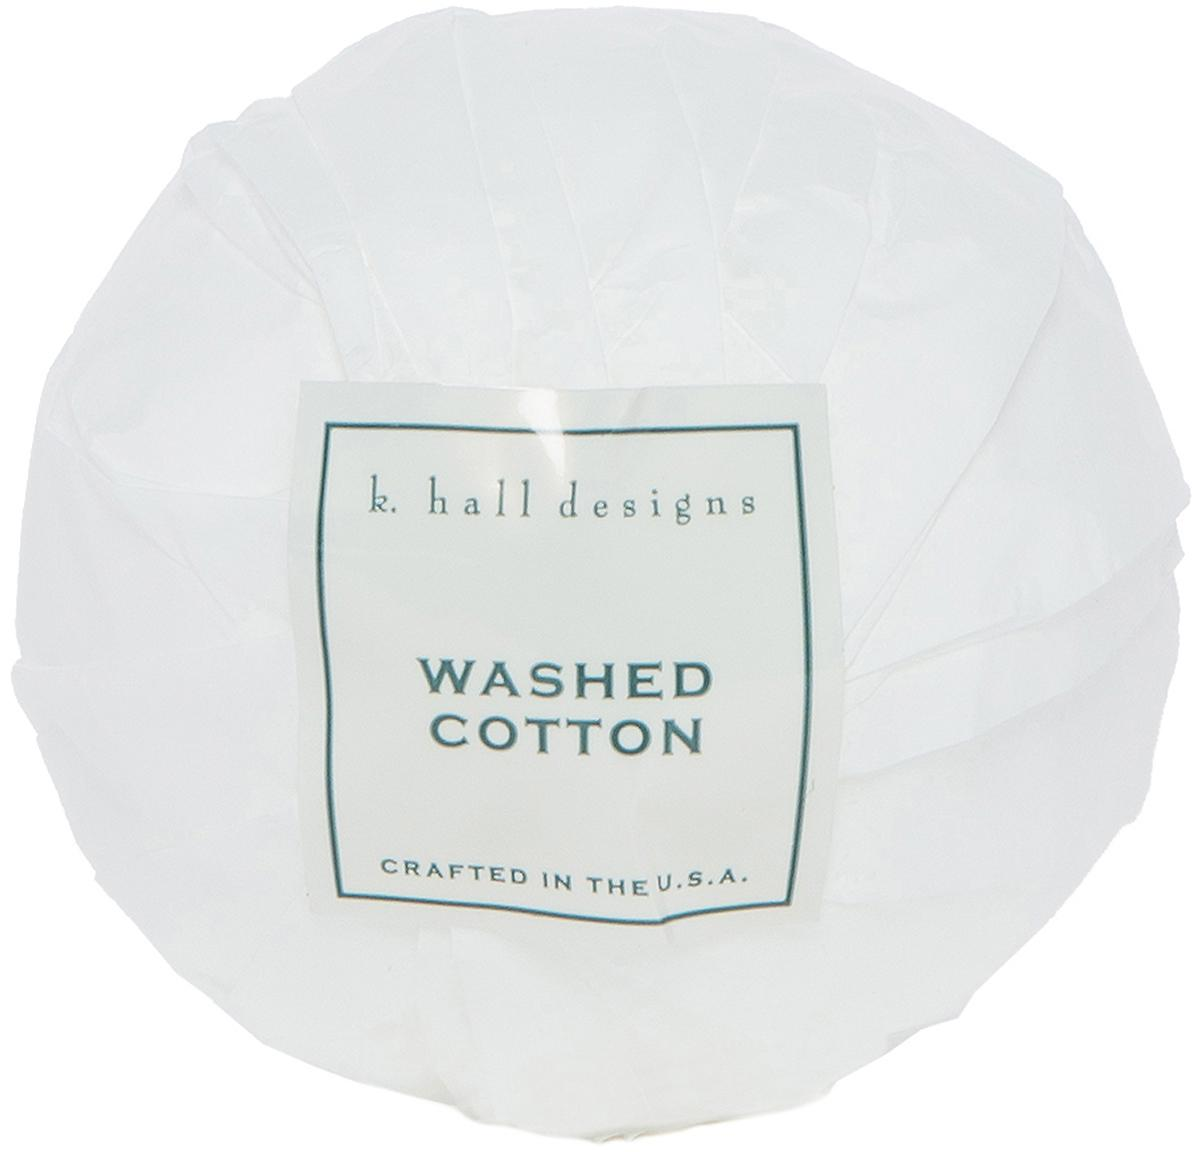 Badekugel Washed Cotton (Lavendel & Kamille), Weiß, Ø 7 x H 7 cm